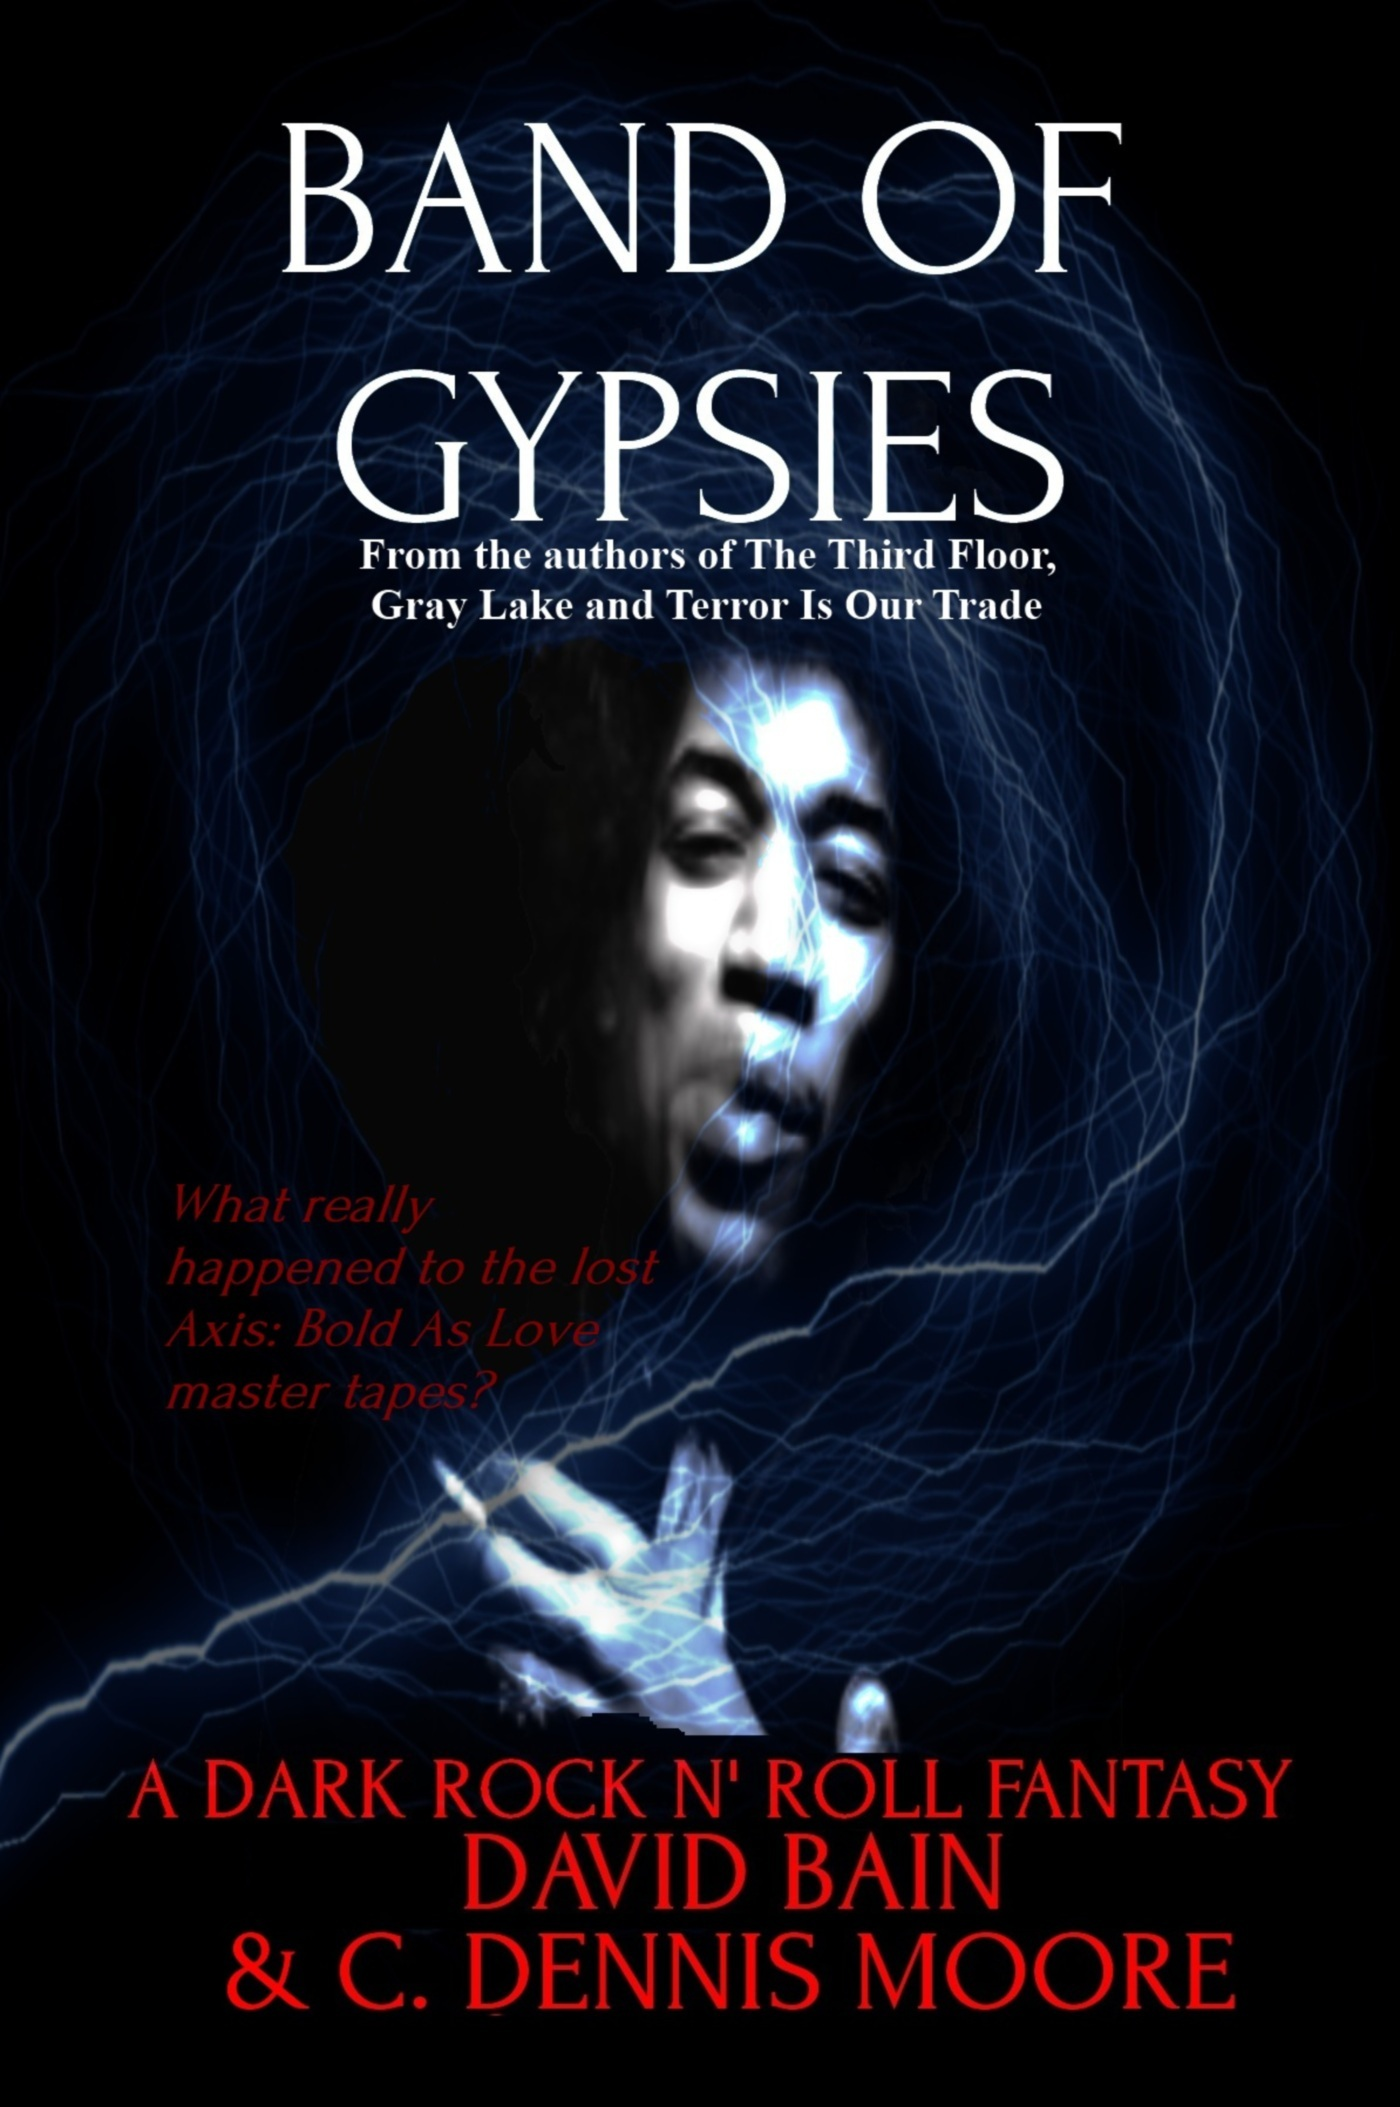 Band of Gypsies: A Dark Rock n' Roll Fantasy by David Bain & C. Dennis Moore